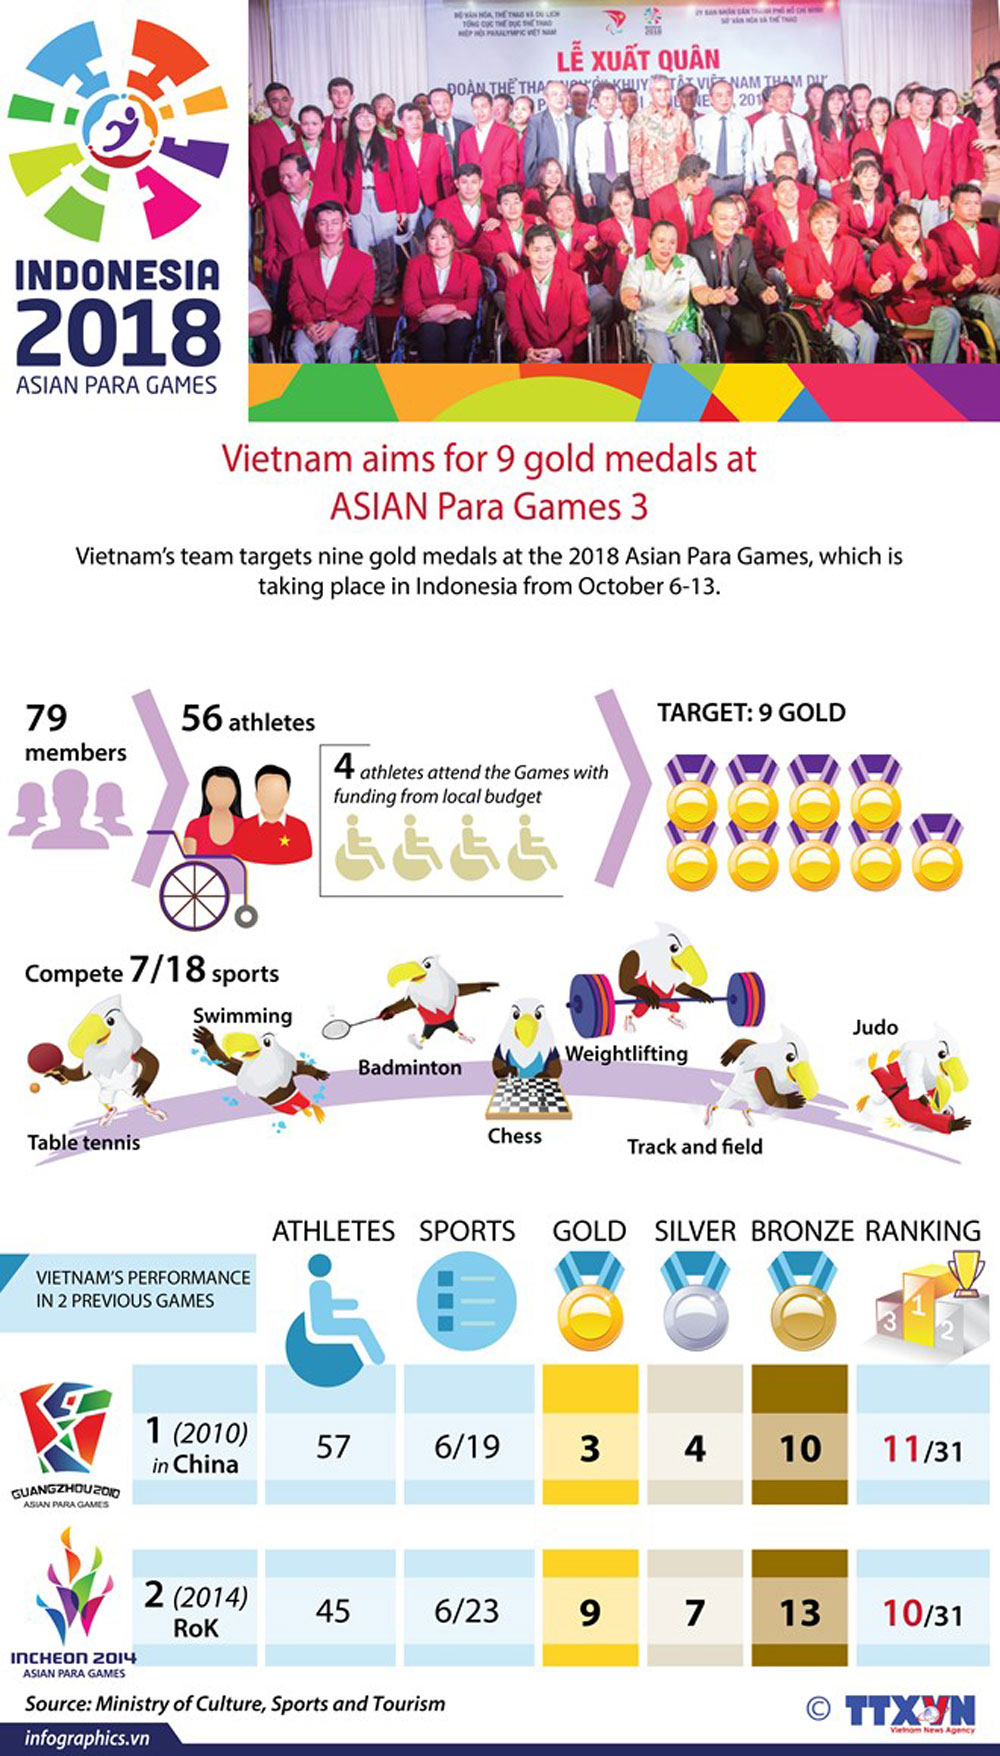 Vietnam,  gold medals, ASIAN Para Games, Indonesia, good ranking, outstanding performance